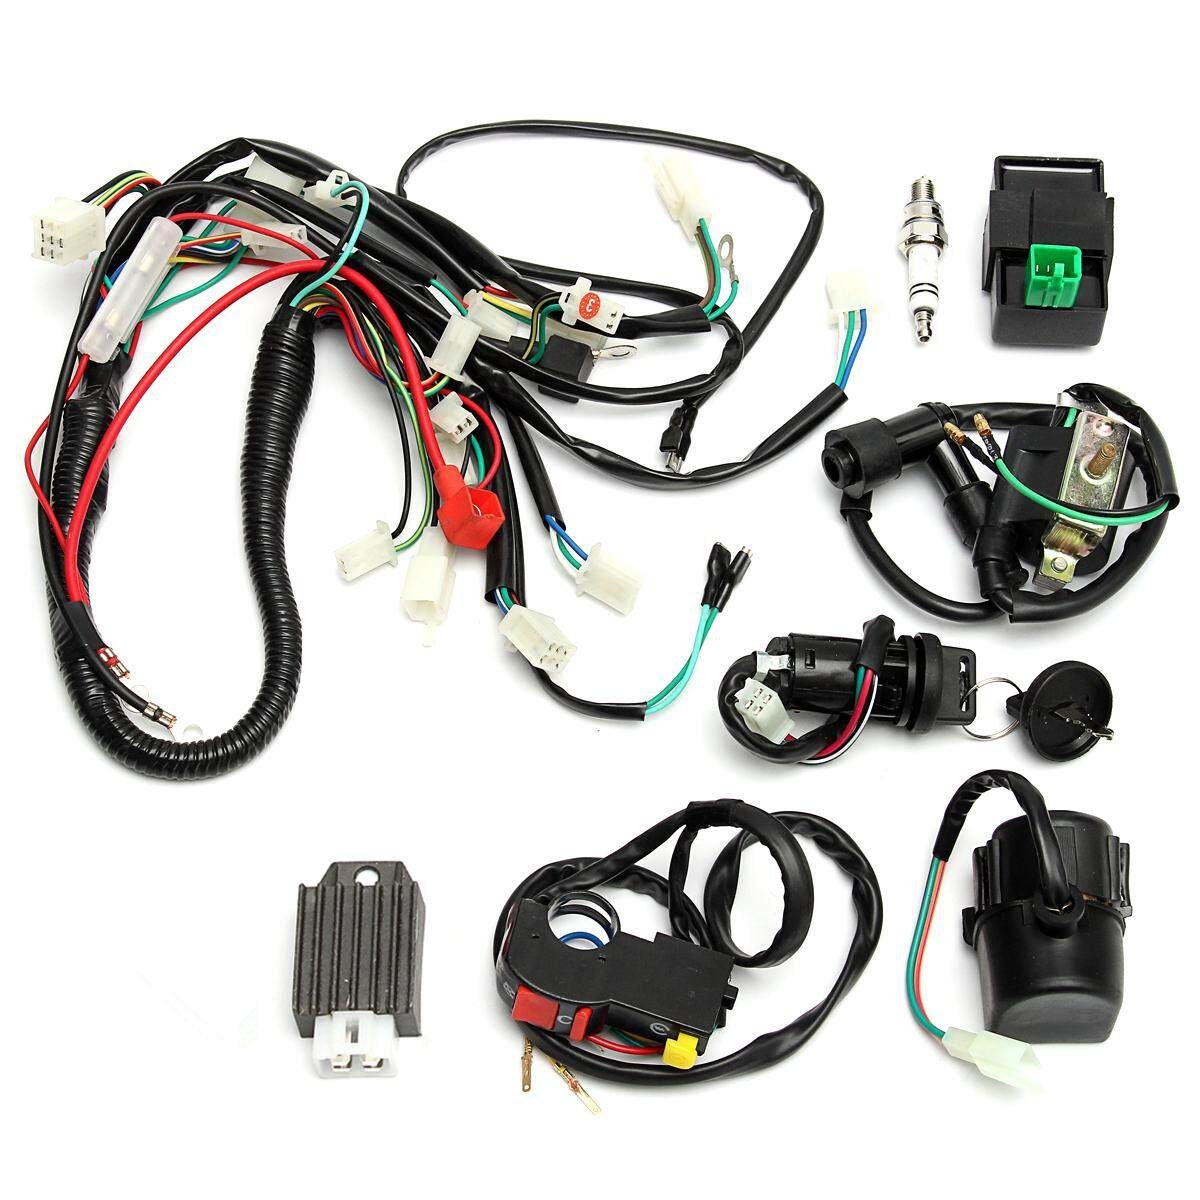 Automotive Wiring For Sale Harness Online Brands Mitsubishi Trailer Full Loom Start Switch Kit Pit Bike Atv 4 Go Kart 50 110cc 125cc